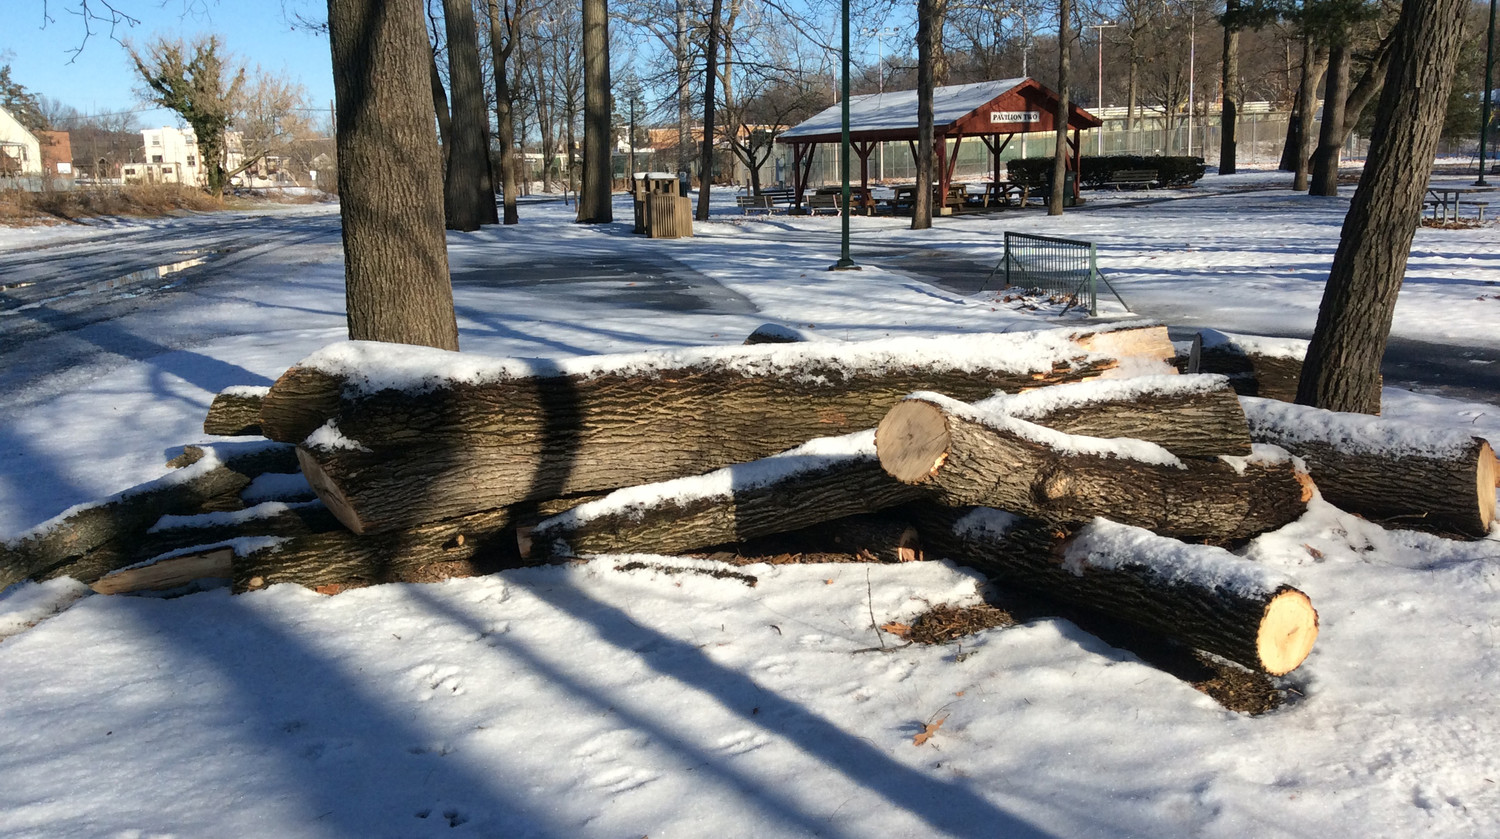 This pile of logs in this Feb. 5 photo is evidence of some of the recent tree-cutting that has been necessary in Hoffer Park, according to Middletown Public Works Director Greg Wilsbach.